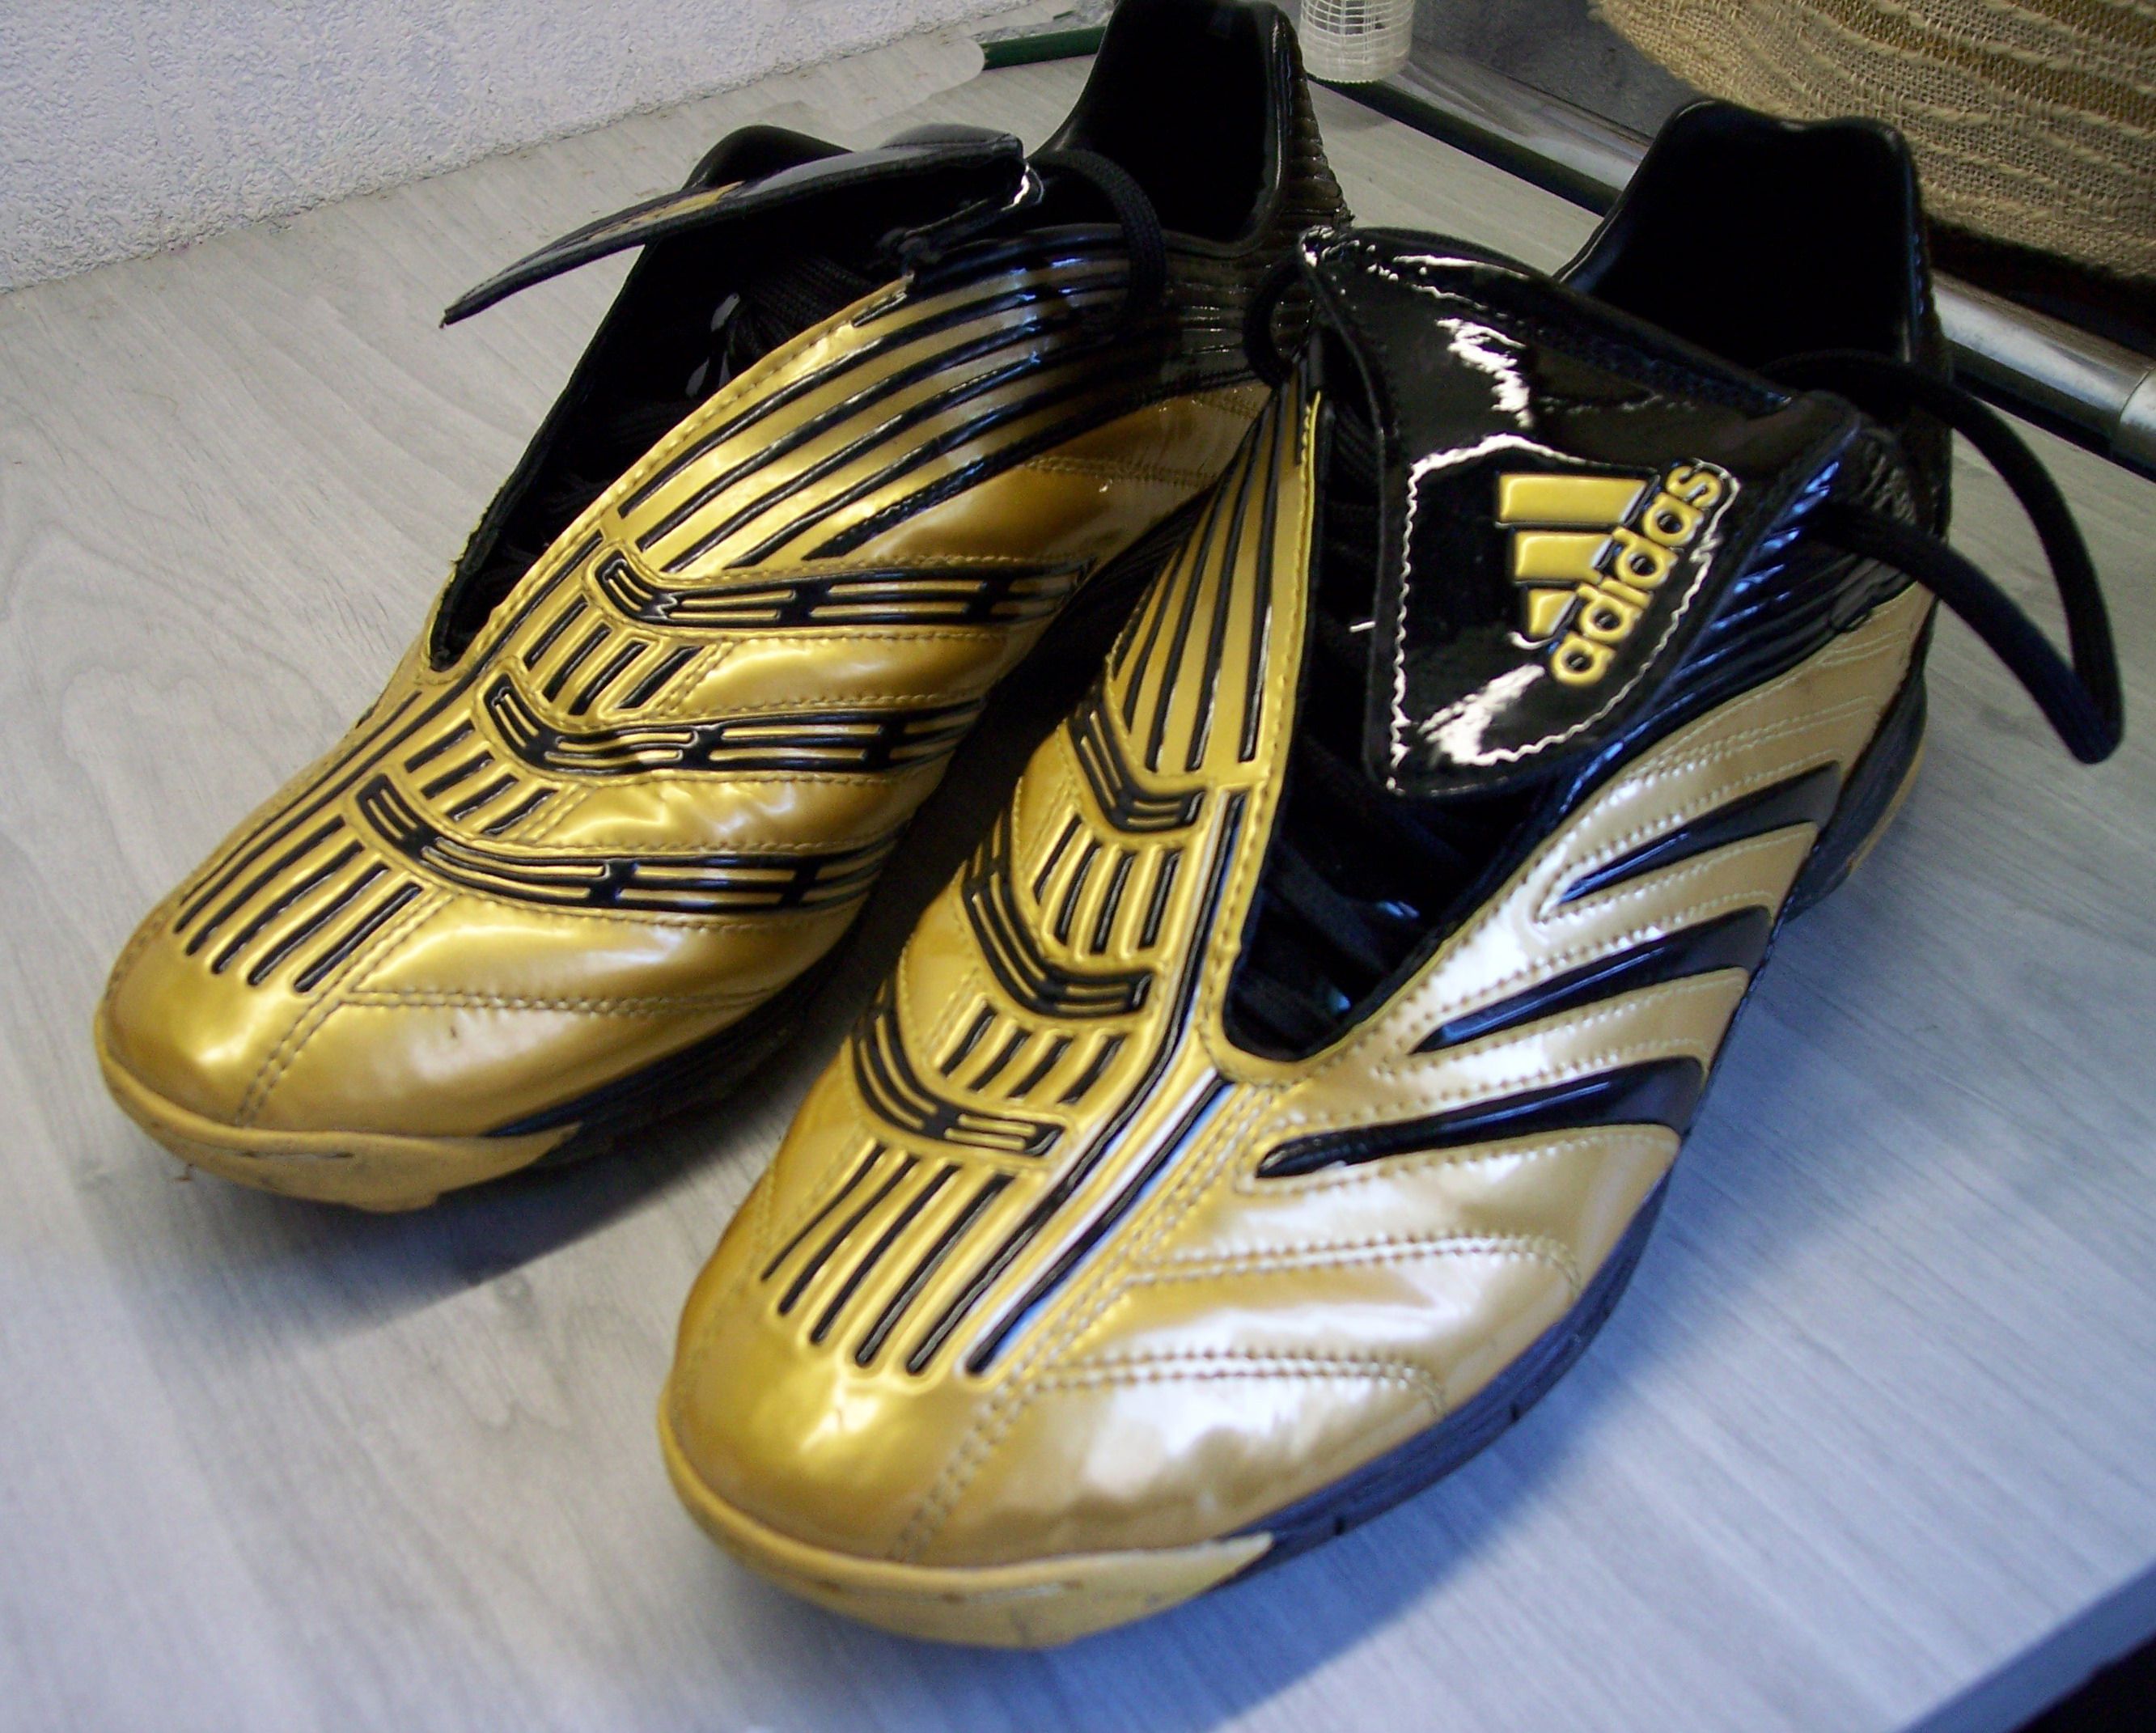 2010 Adidas F10 Football Boots *In Box* FG